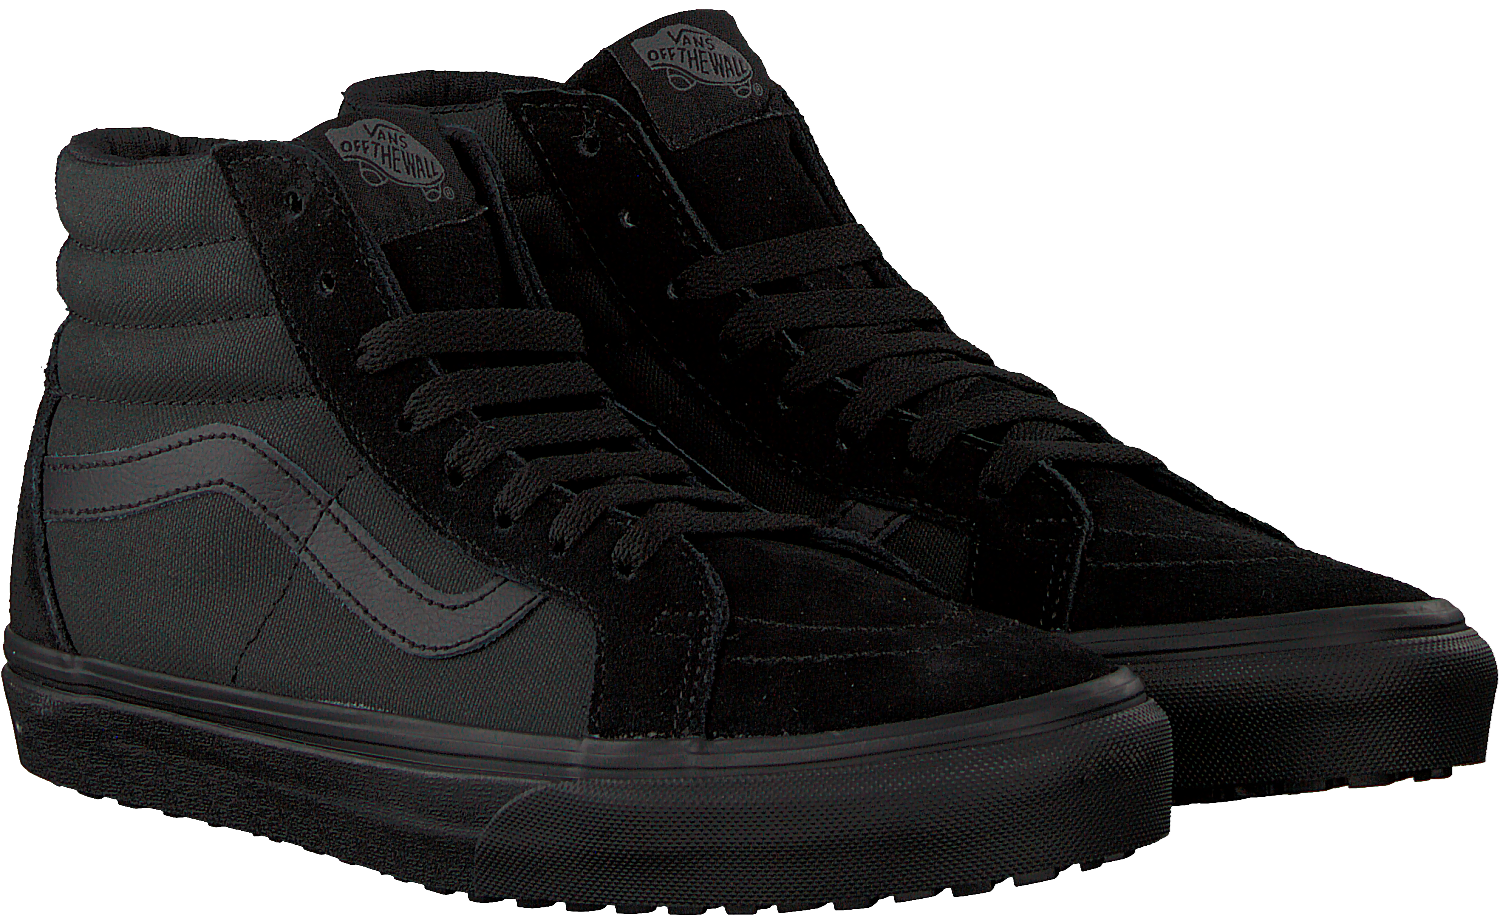 Made for the Makers 2.0 Sk8 Hi Reissue UC Schoenen